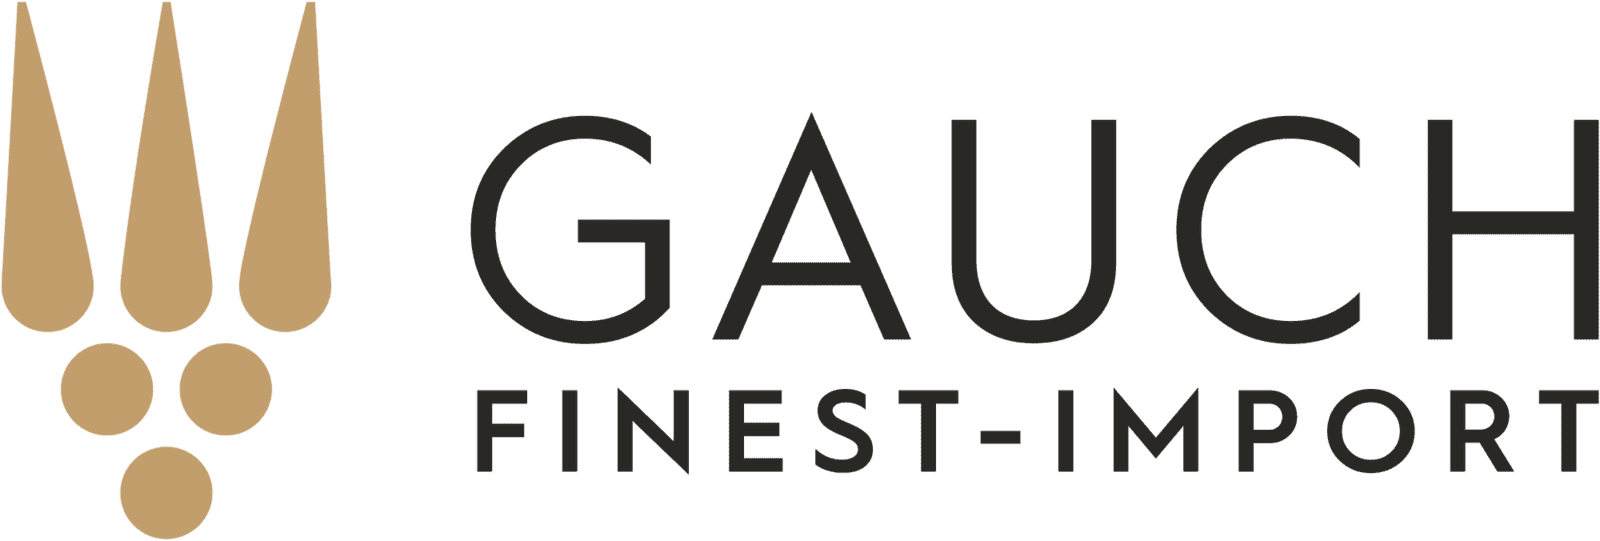 Gauch-Finest-Import-Logo